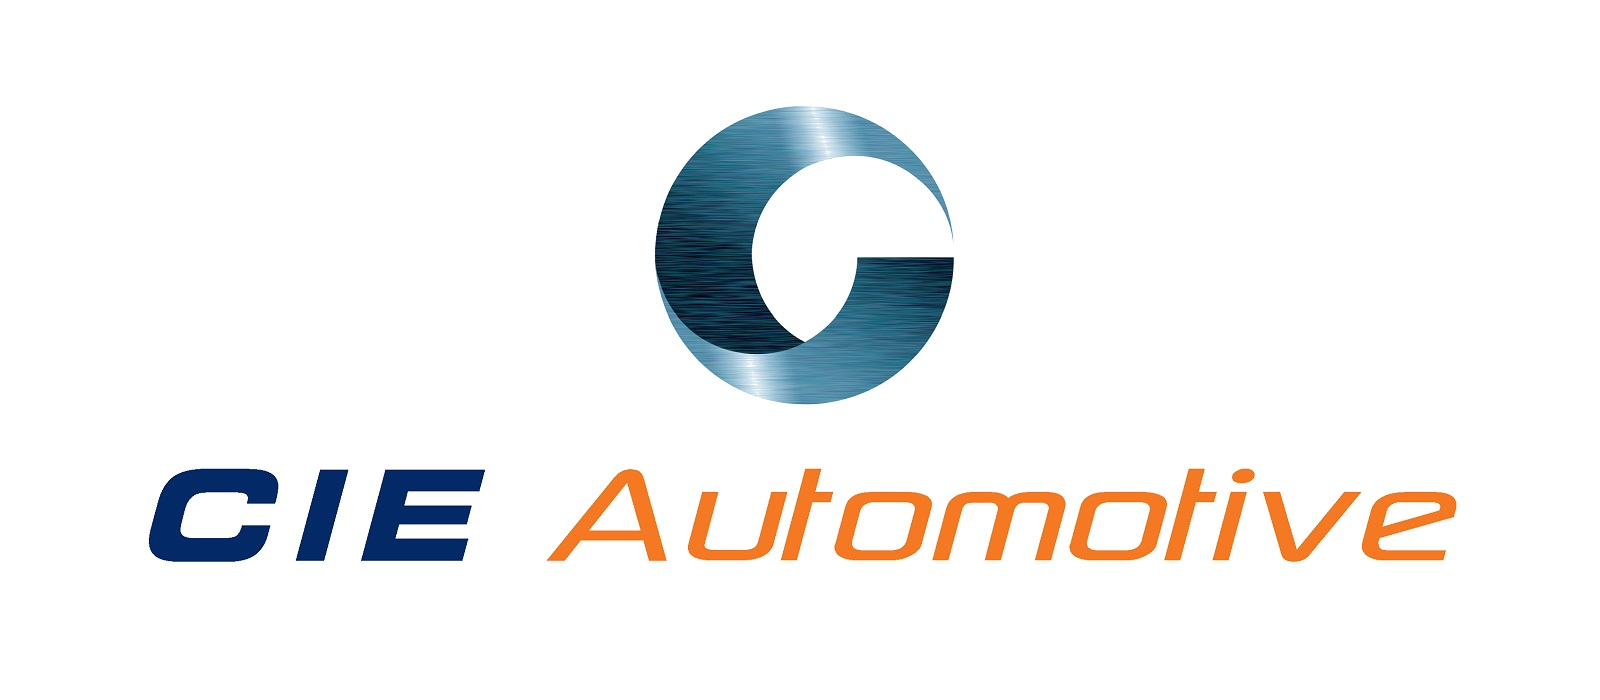 CIE Automotive JPG